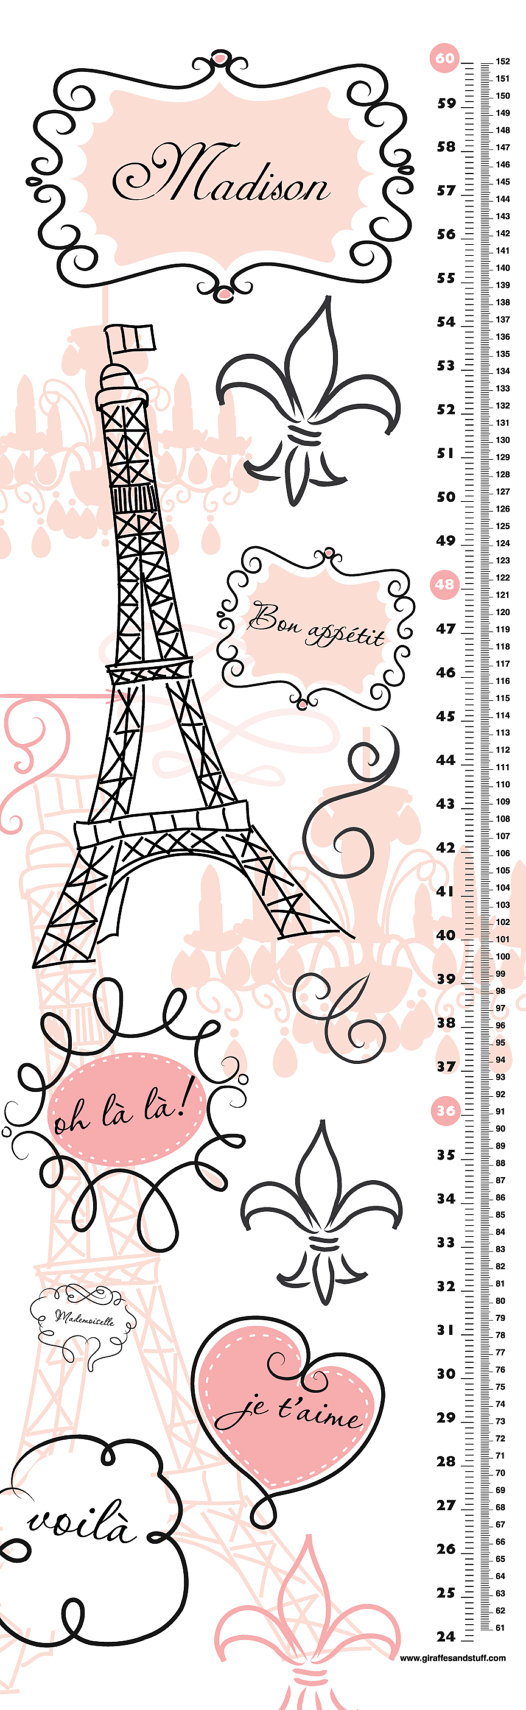 Childrens custom growth chart paris by giraffesnstuff on etsy childrens custom growth chart paris by giraffesnstuff on etsy geenschuldenfo Choice Image